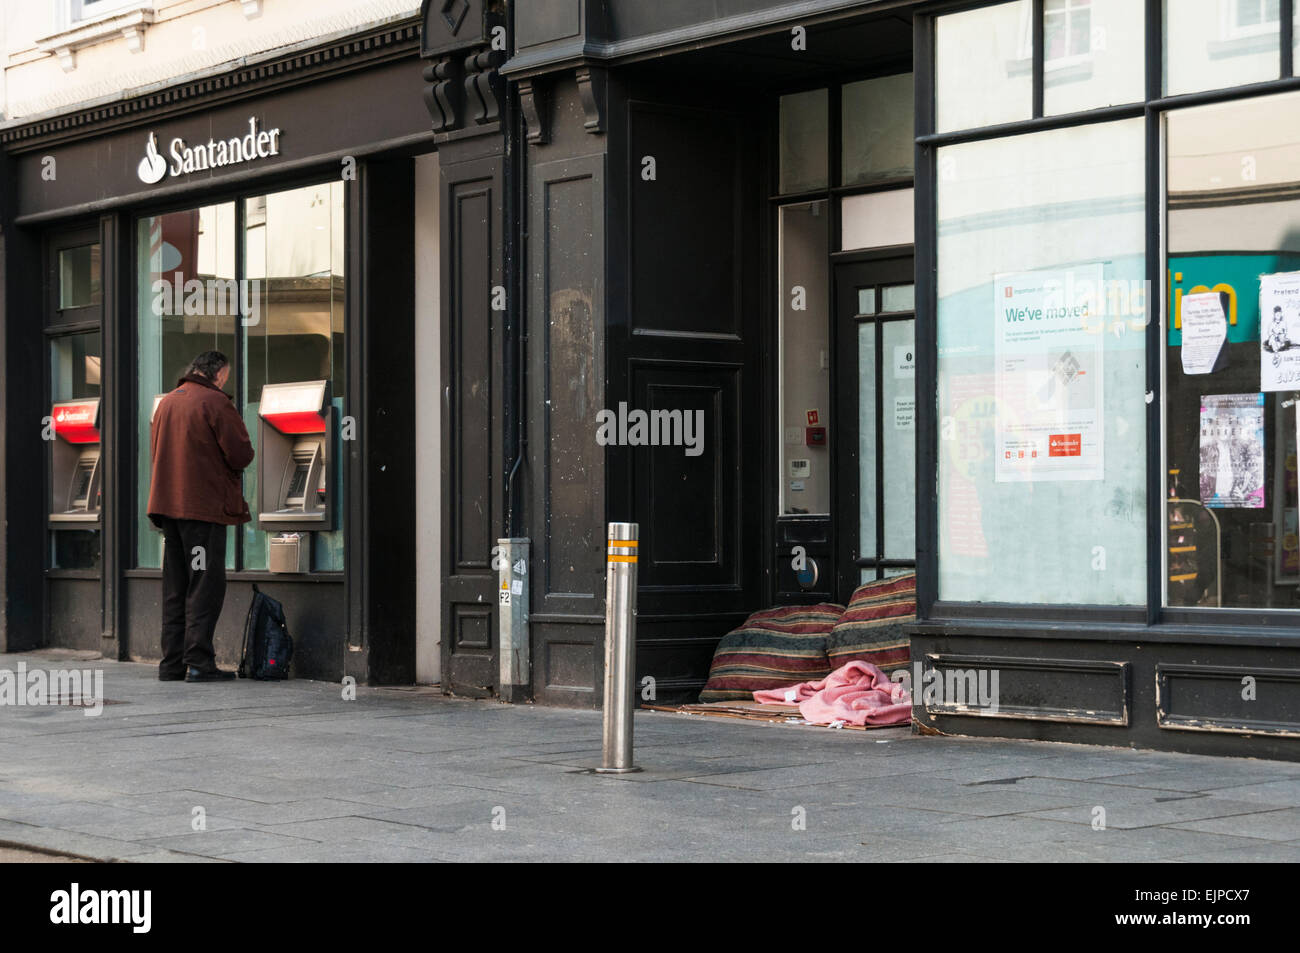 Man withdrawing cash from a bank cash machine next to a homeless persons bed in a disused shop doorway Stock Photo